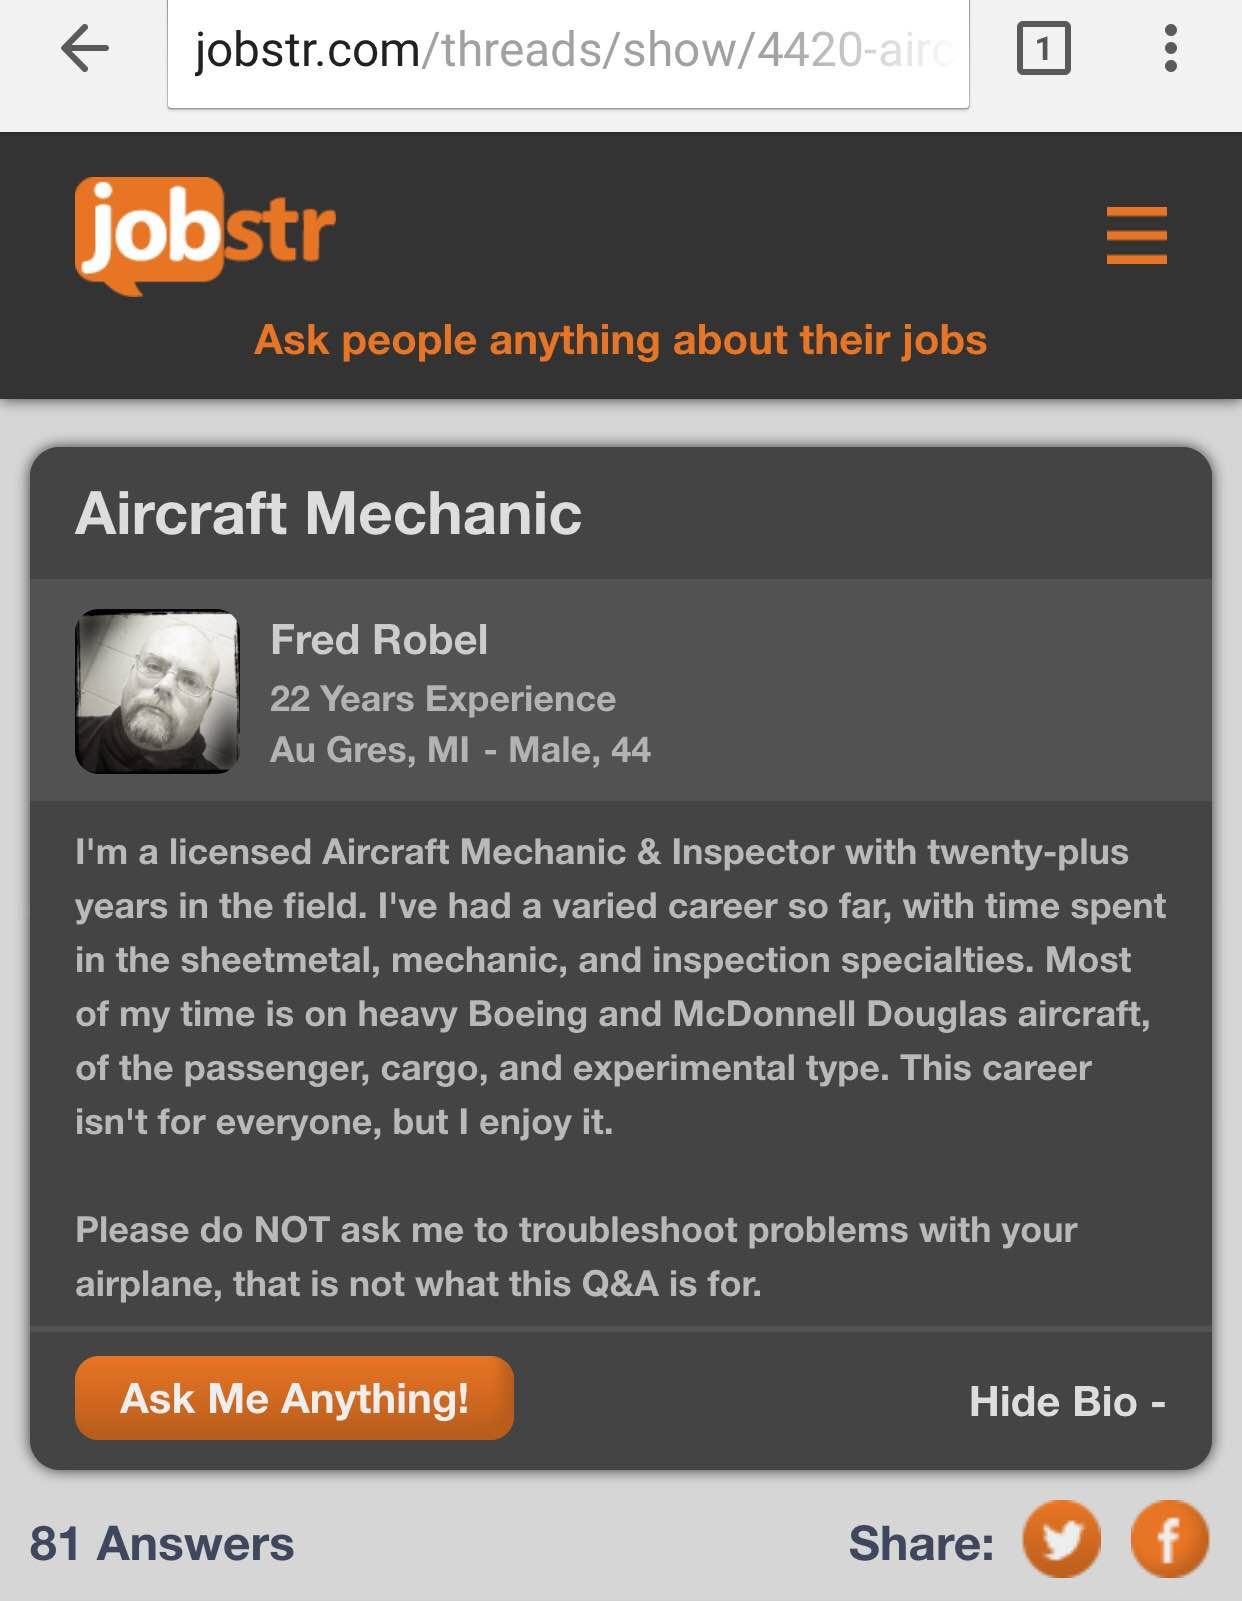 A newly minted A&P mechanic asked Fred Robel for some advice.